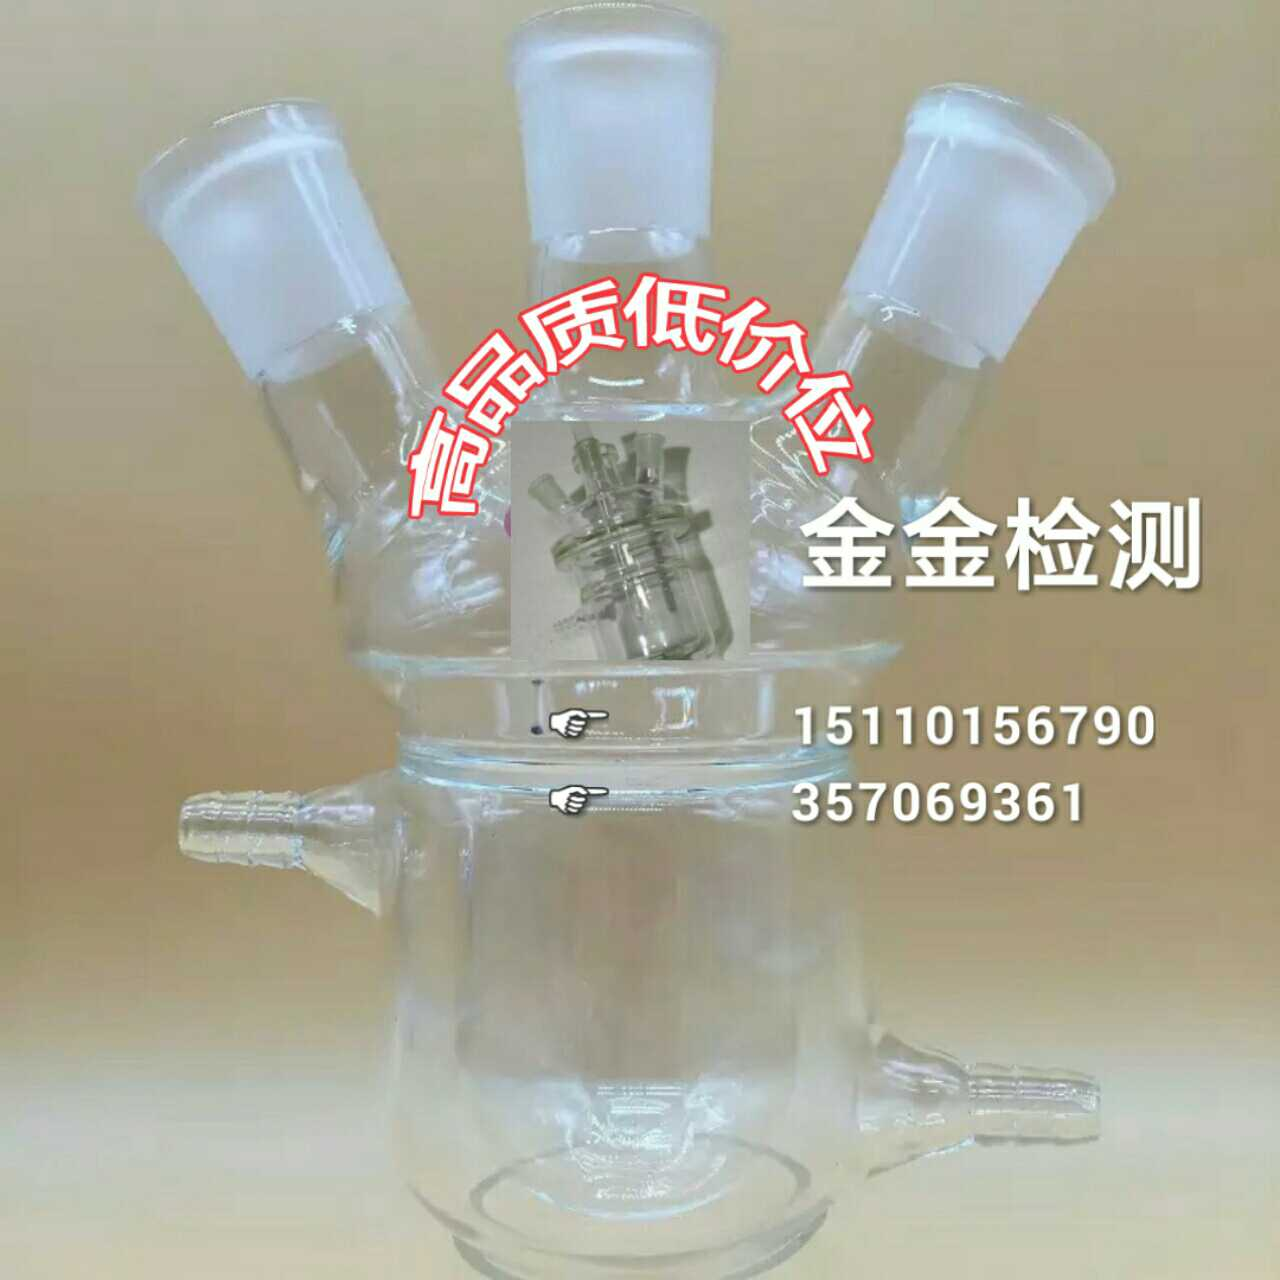 Three jacketed reactor, 100ml24*24*24 double layer reactor, glass jacketed reaction flask